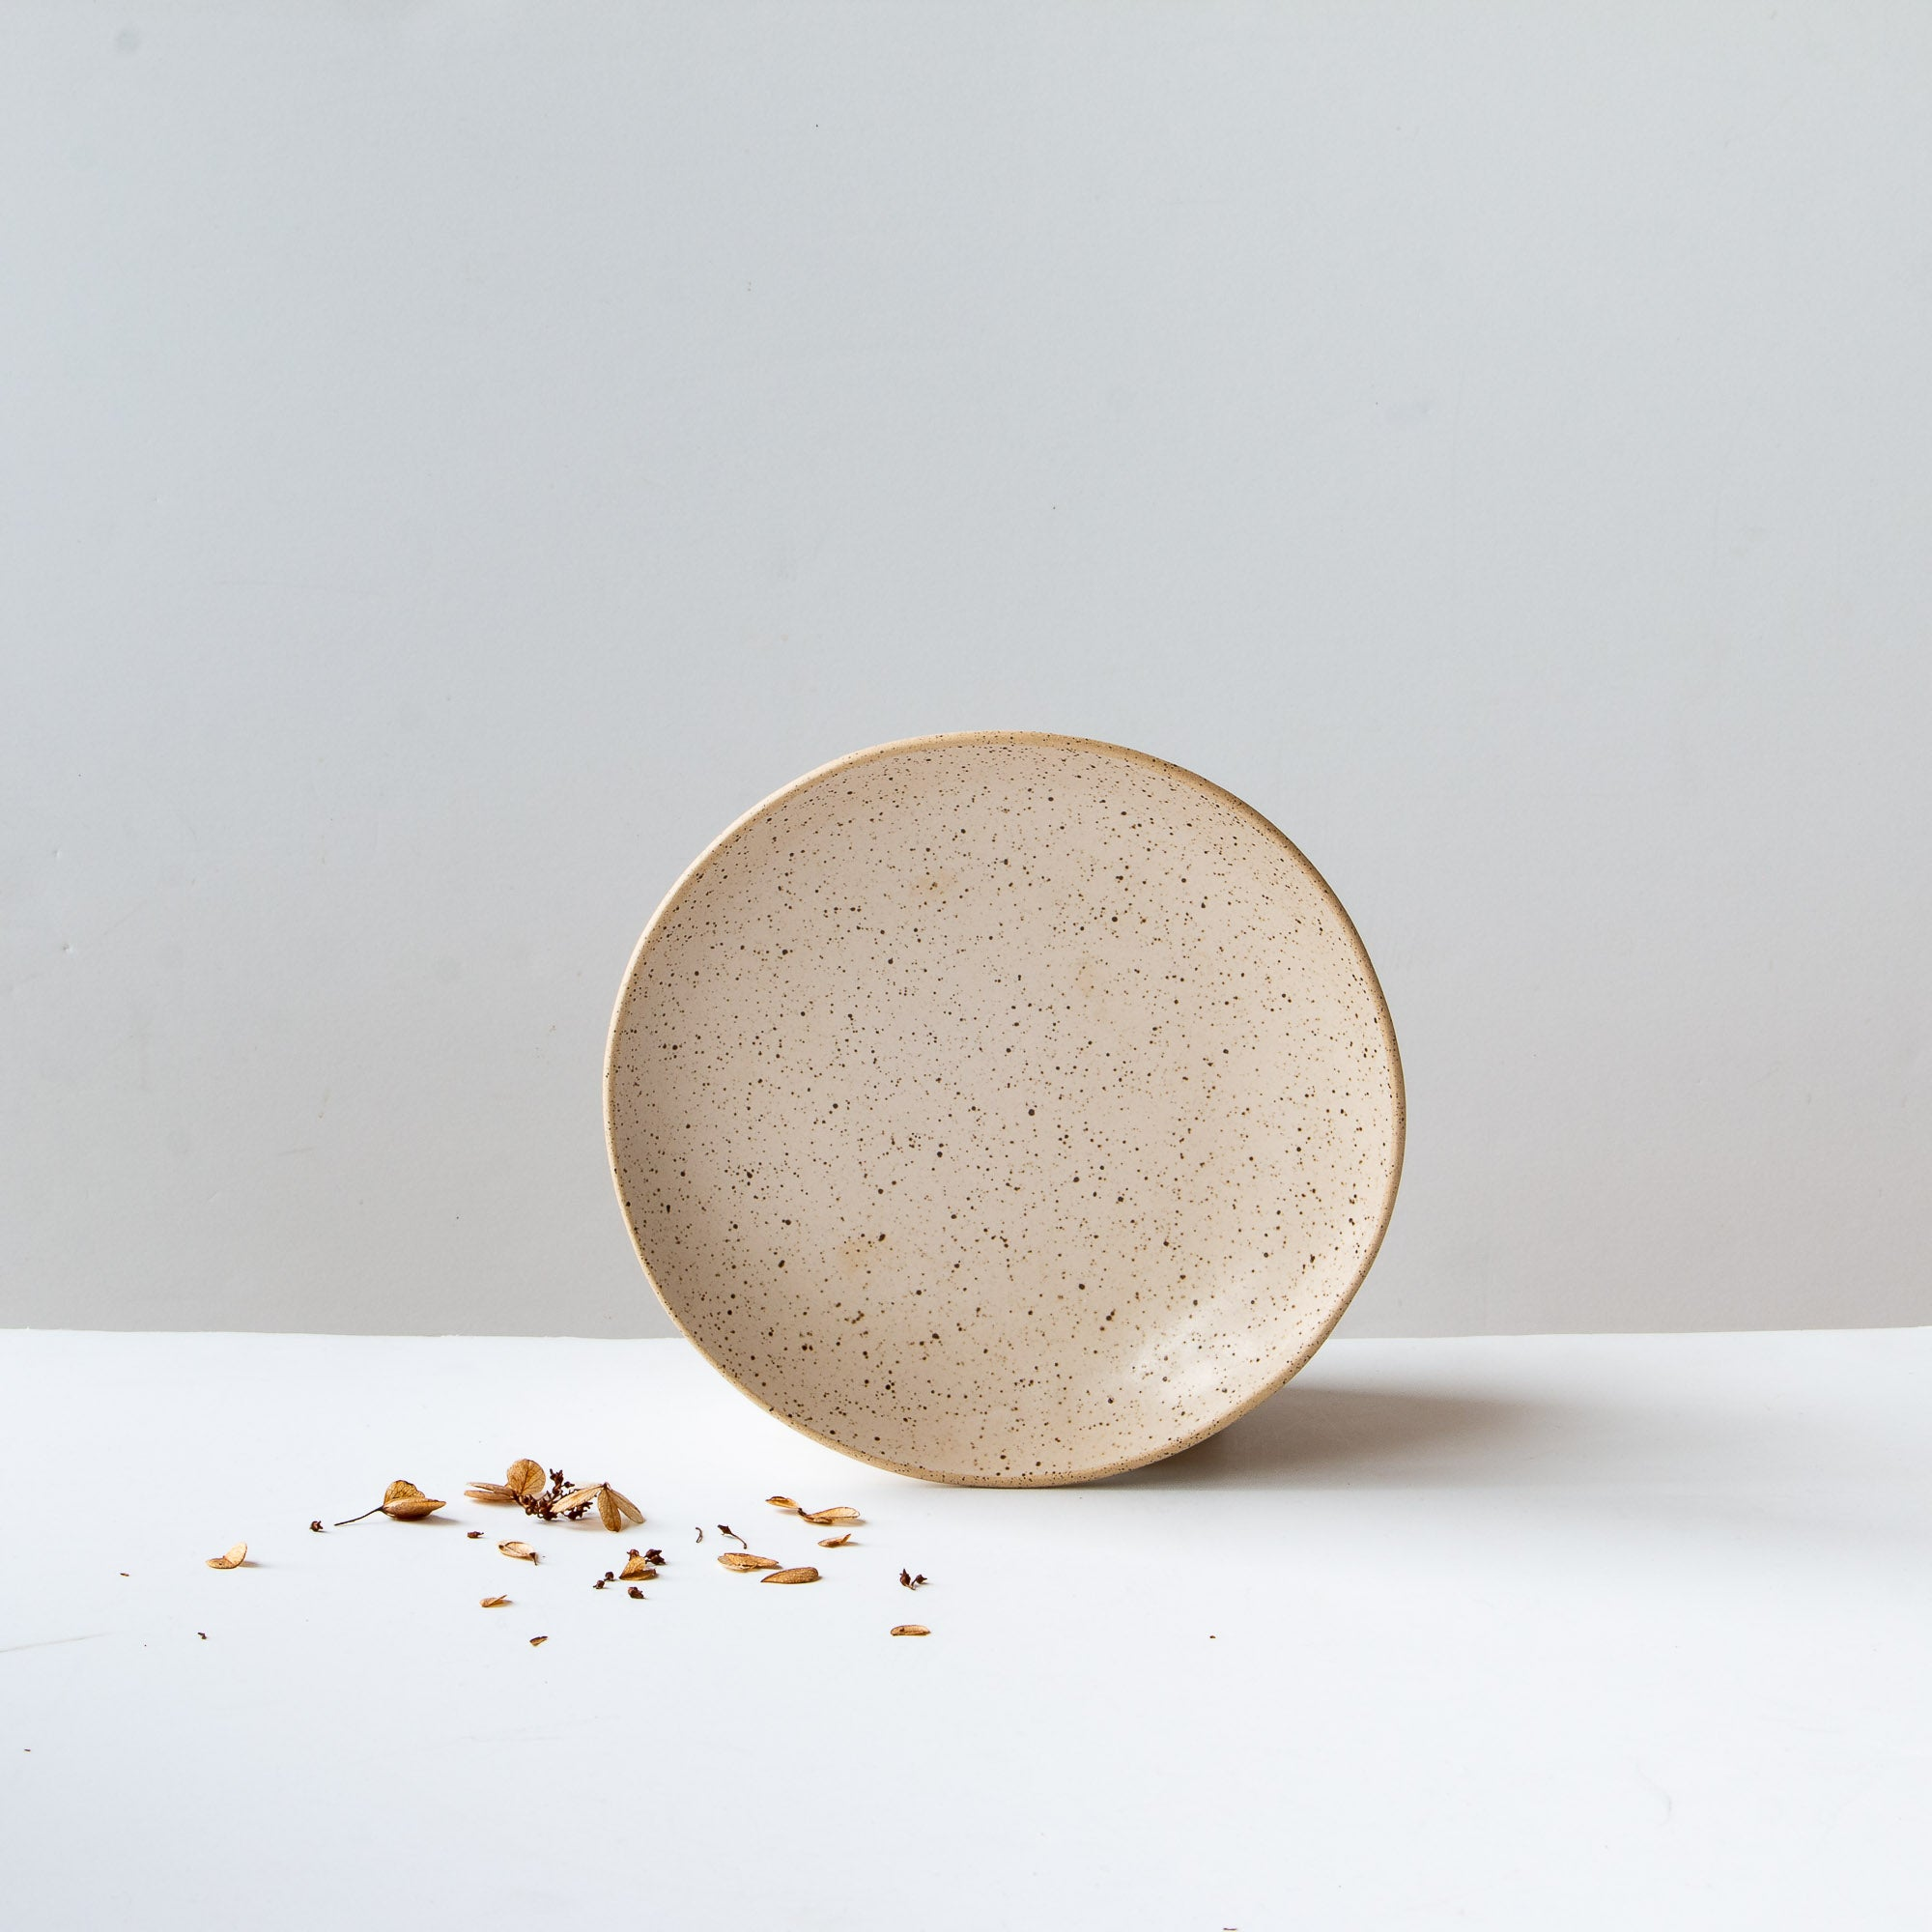 Yellow Handmade Freckled Salad Plate in Stoneware - Sold by Chic & Basta